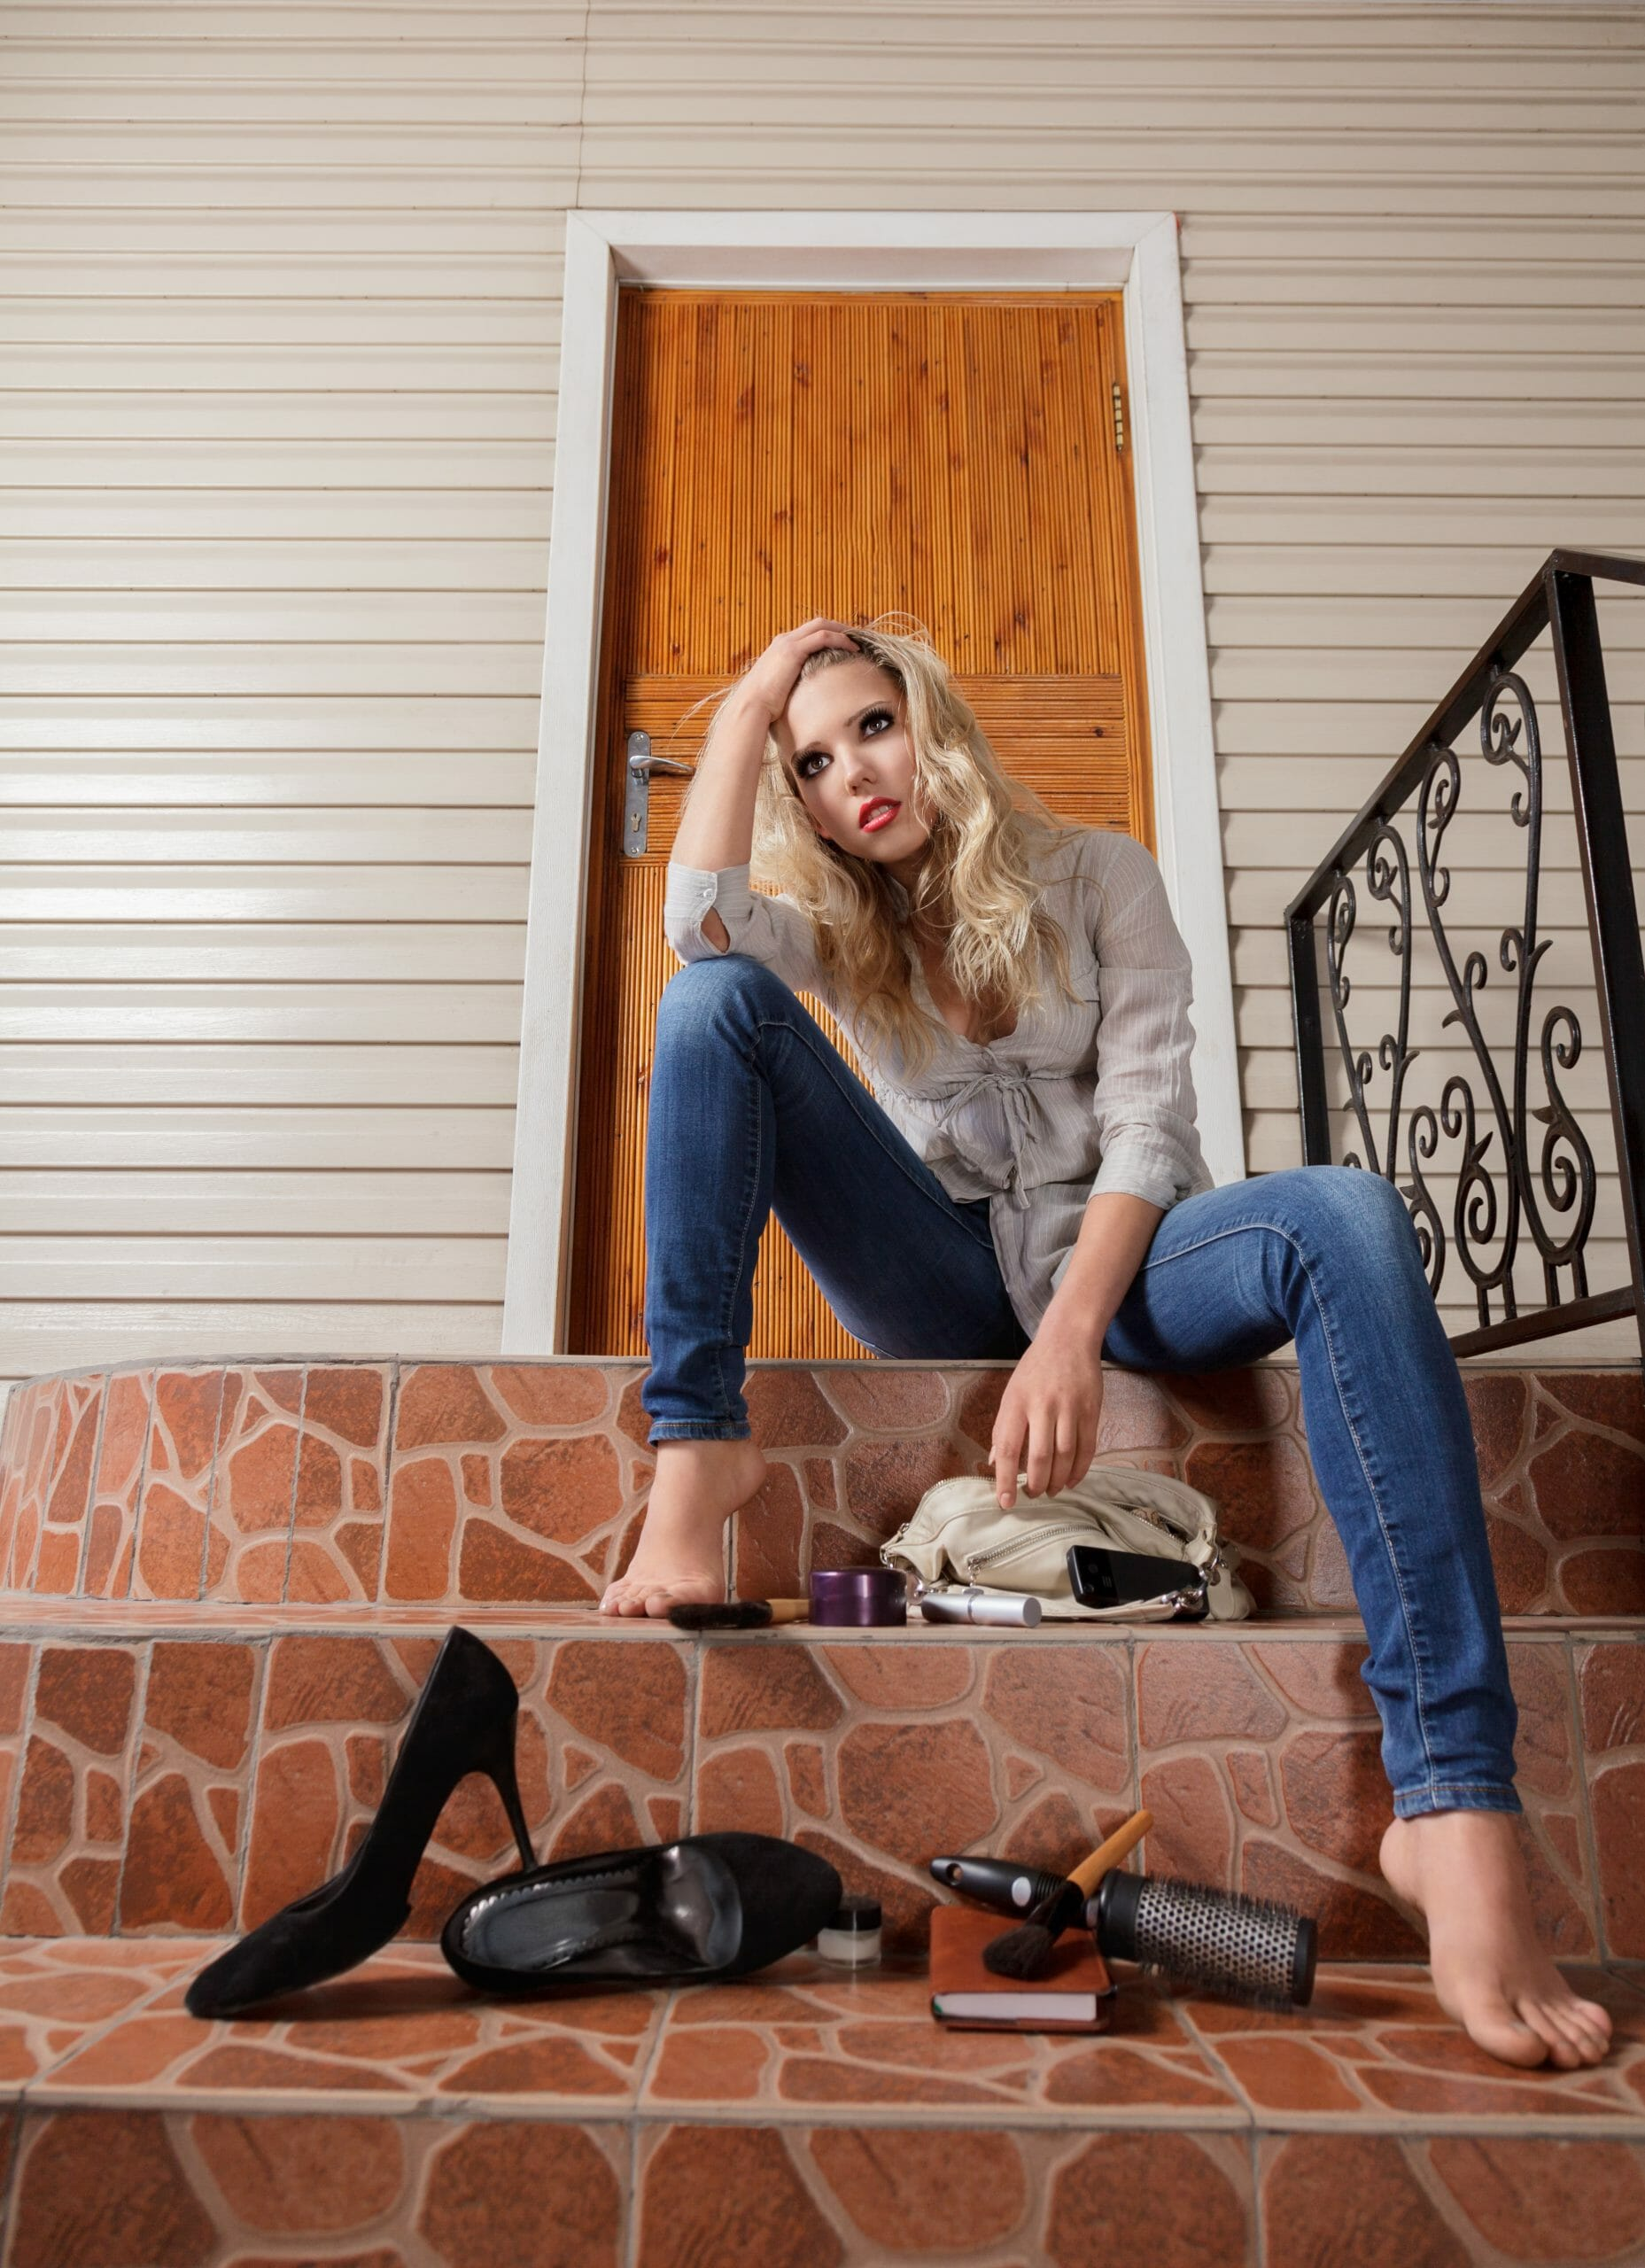 Young sad woman lost her house keys. Girl sits in front of the door